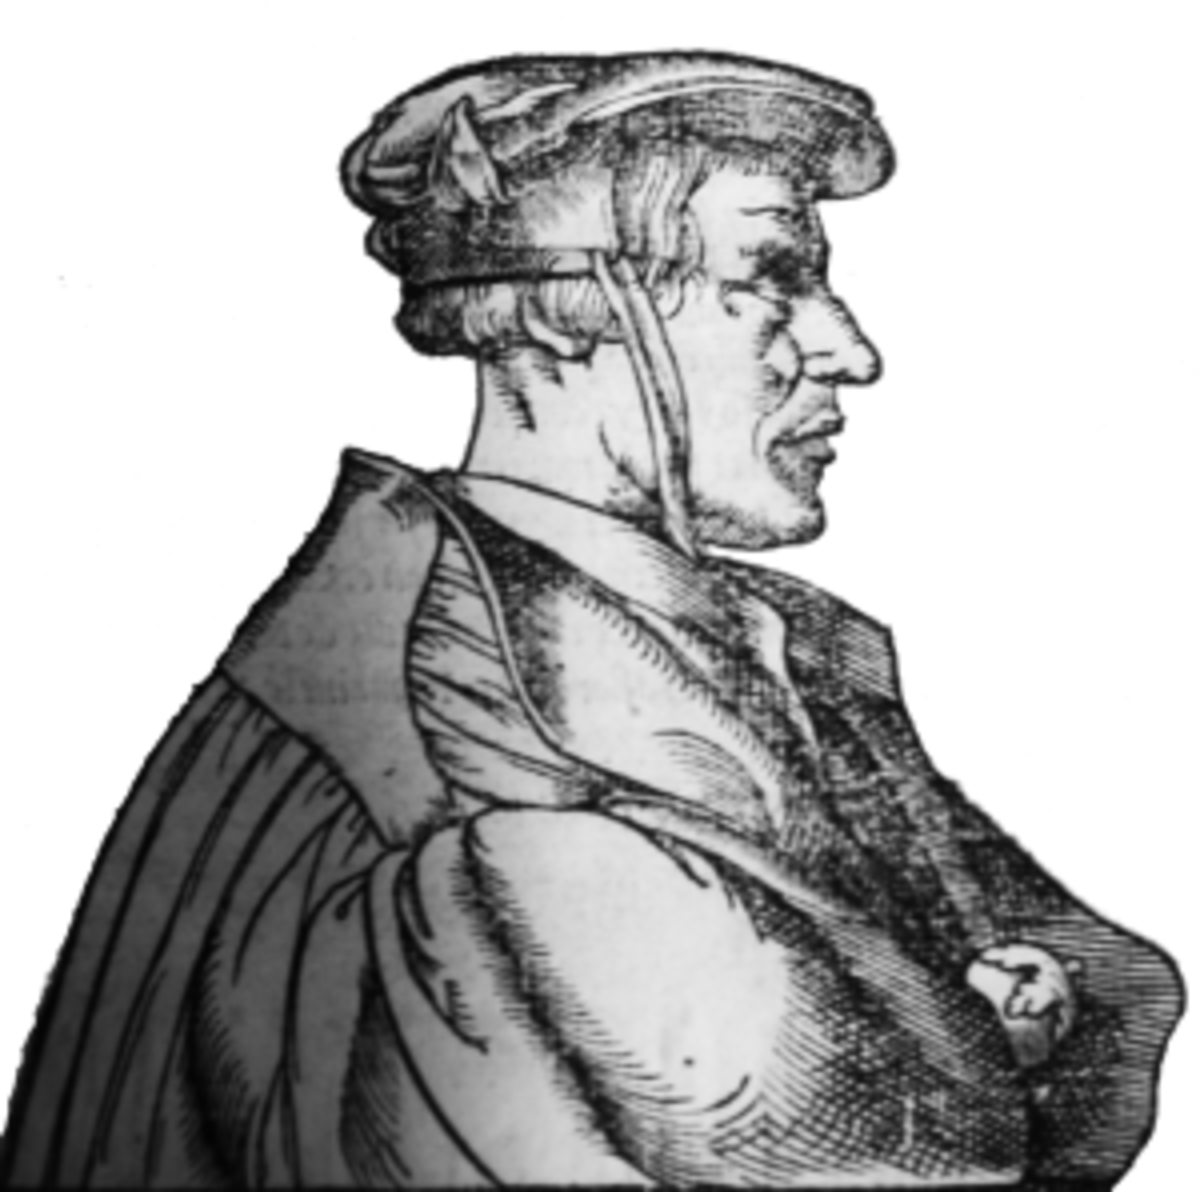 Heinrich Cornelius Agrippa von Nettesheim (1486–1535) was a German physician and scholar.